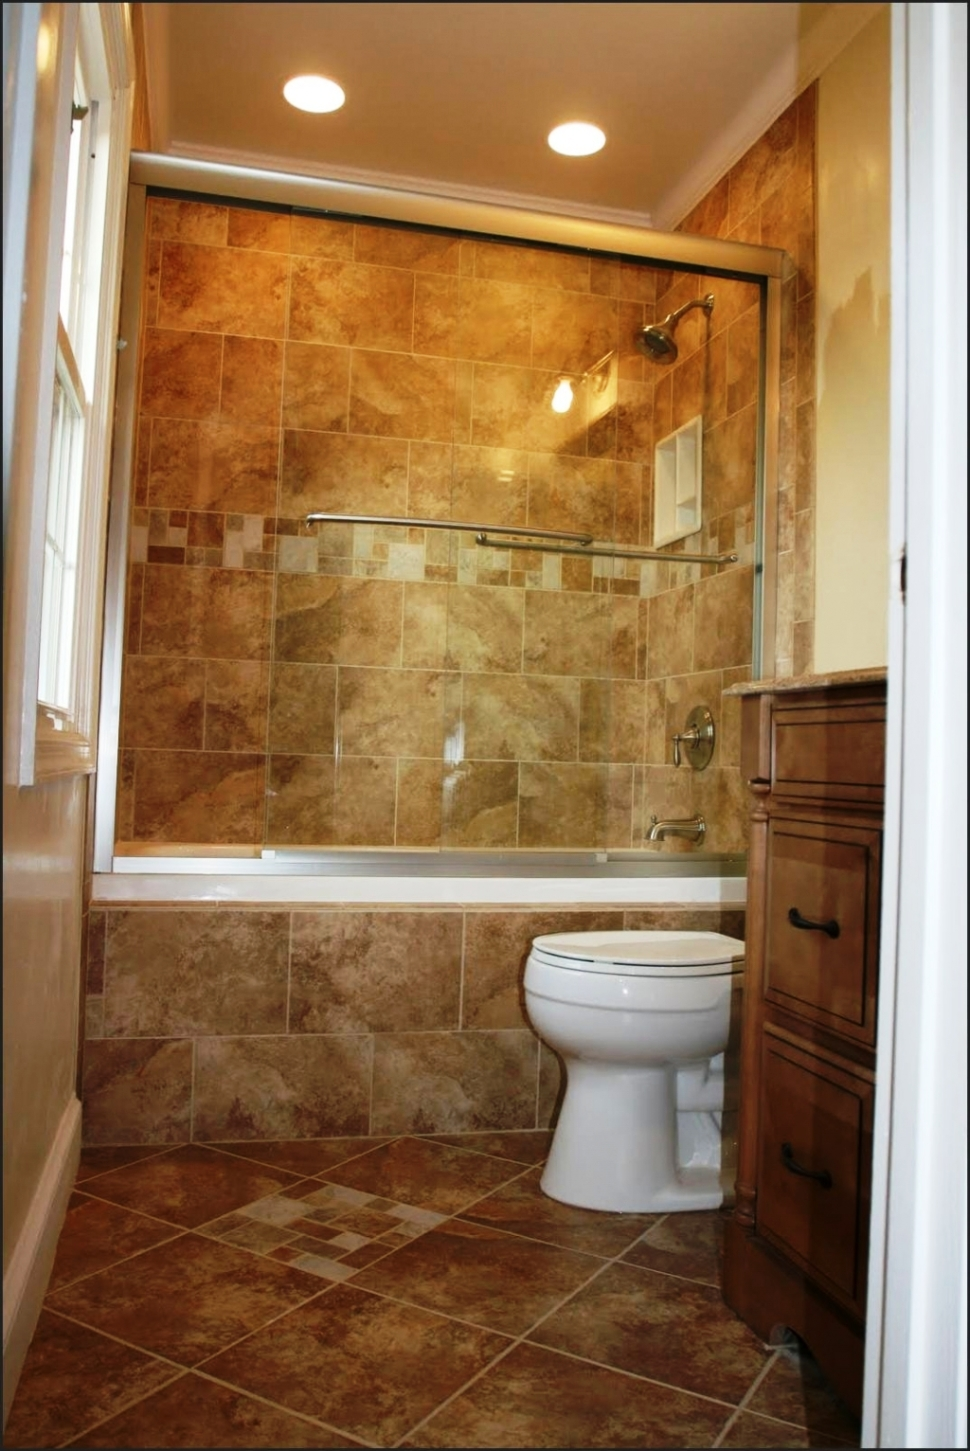 white-toilet-seat-also-drop-in-bathtub-or-small-ceiling-lighting-feat-brown-wooden-cabinets-plus-vintage-bathroom-tile-ideas-970x1451